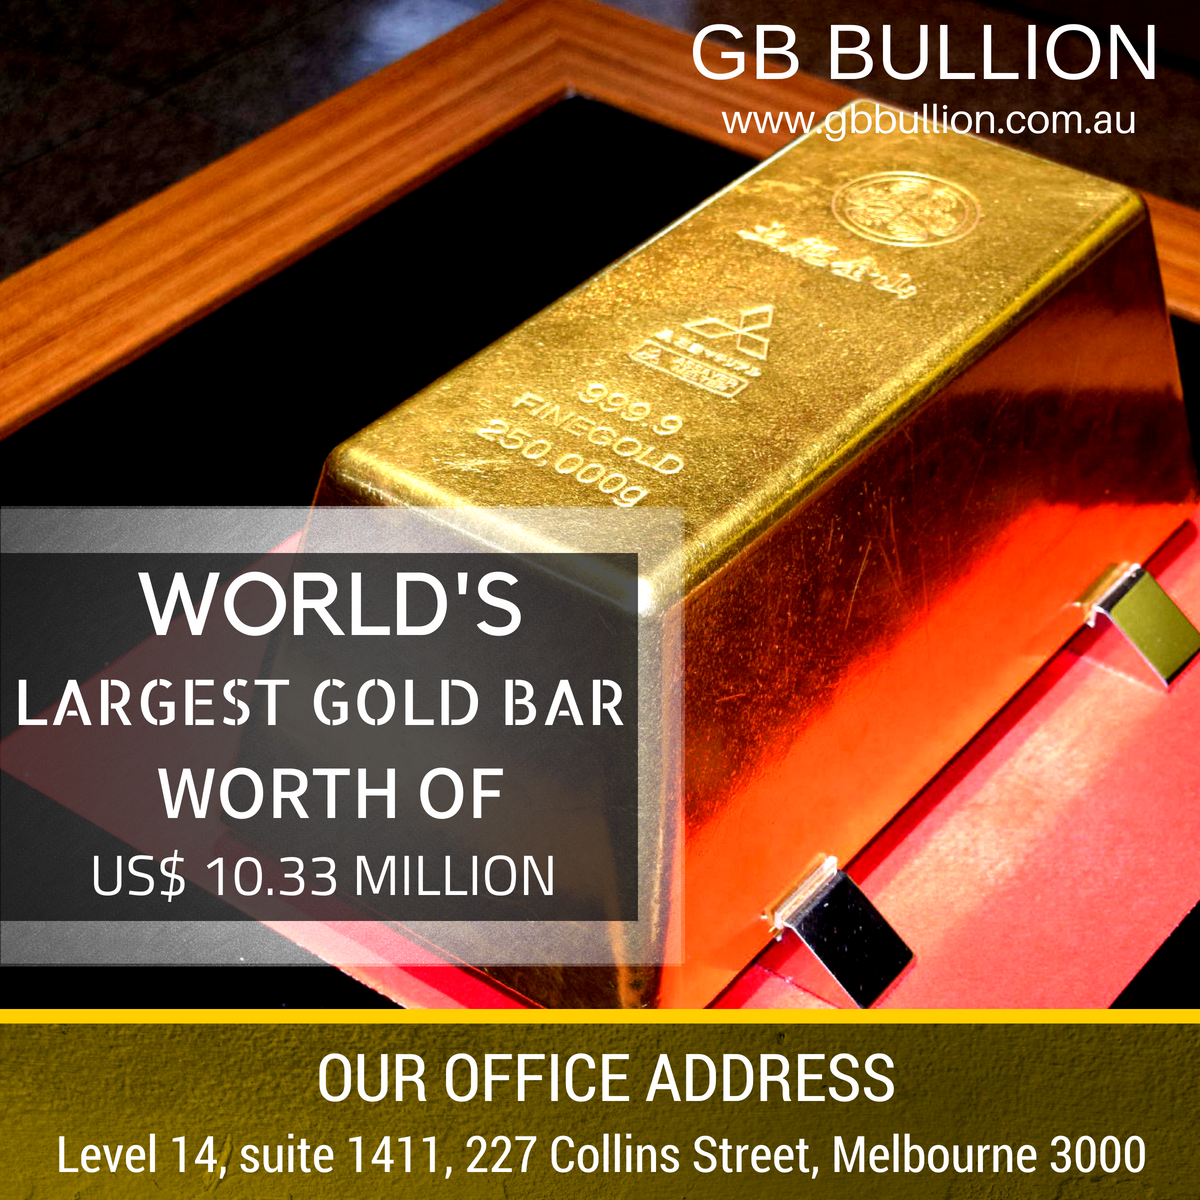 The World S Largest Gold Bar Stands At 250 Kg 551 Lb It Was Manufactured By The Mitsubishi Materials Corporation A Subsi Gold Museum Gold Bullion Gold Price